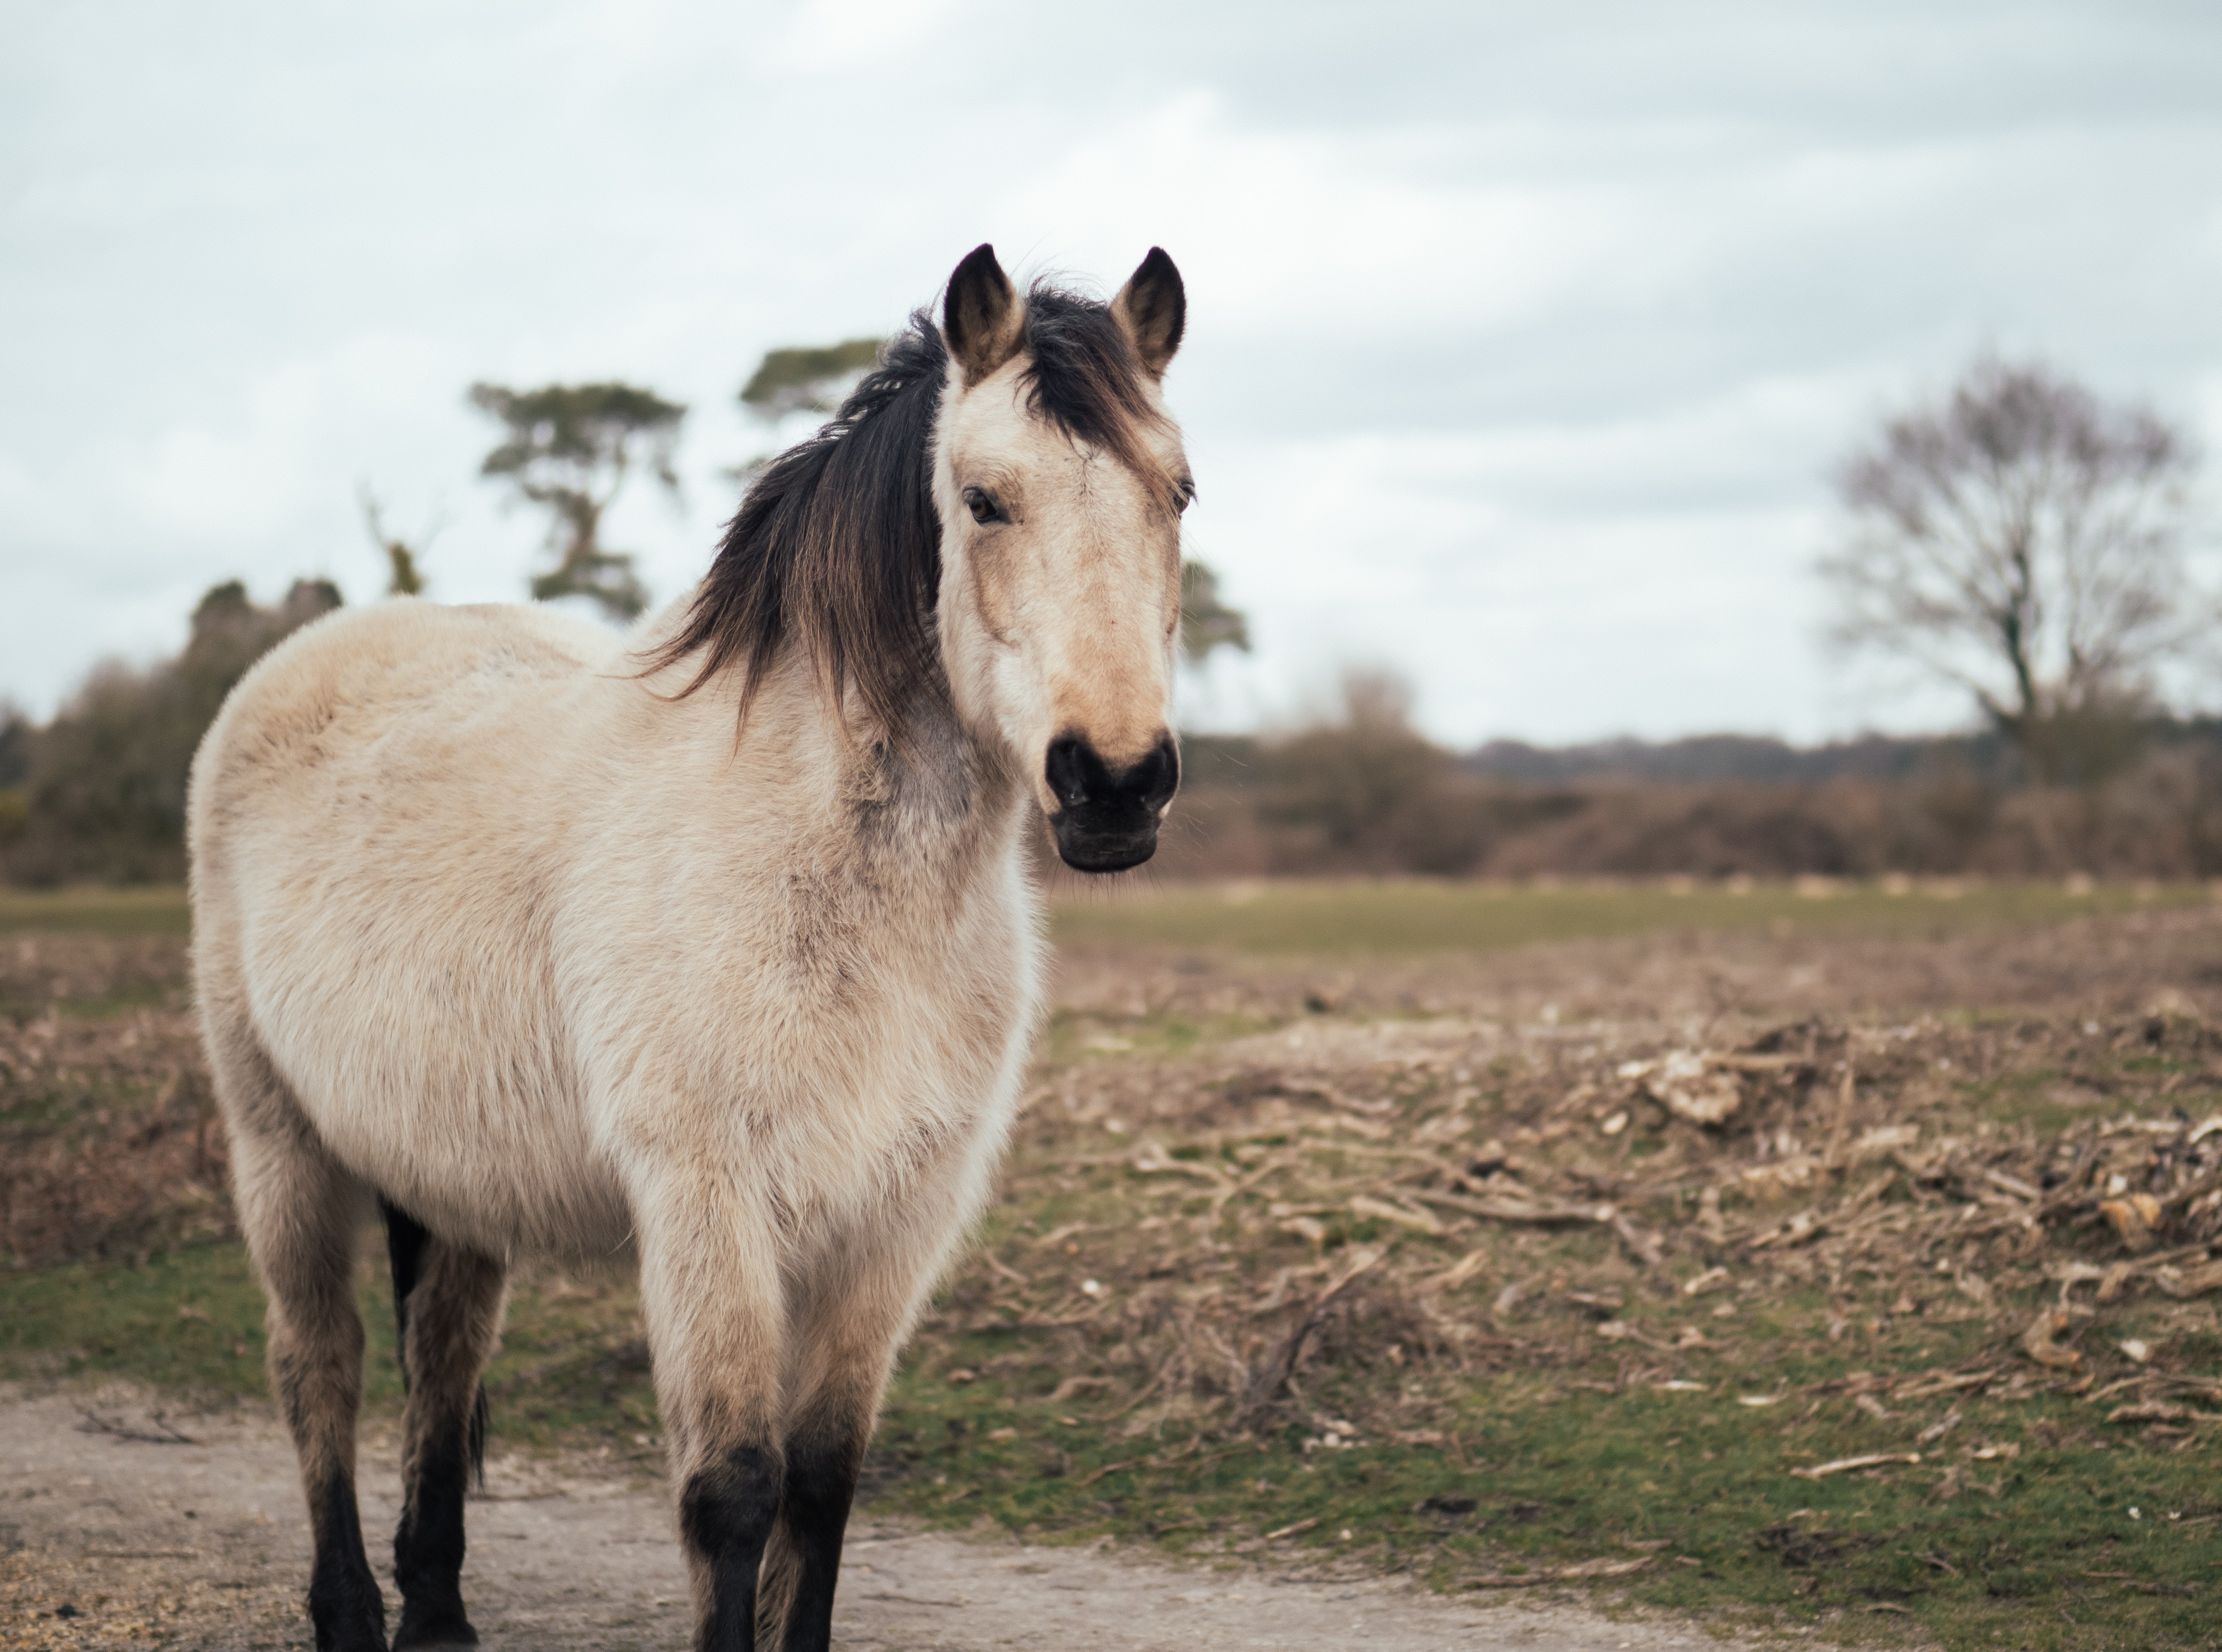 photography of black and beige pony standing on pathway near grass field